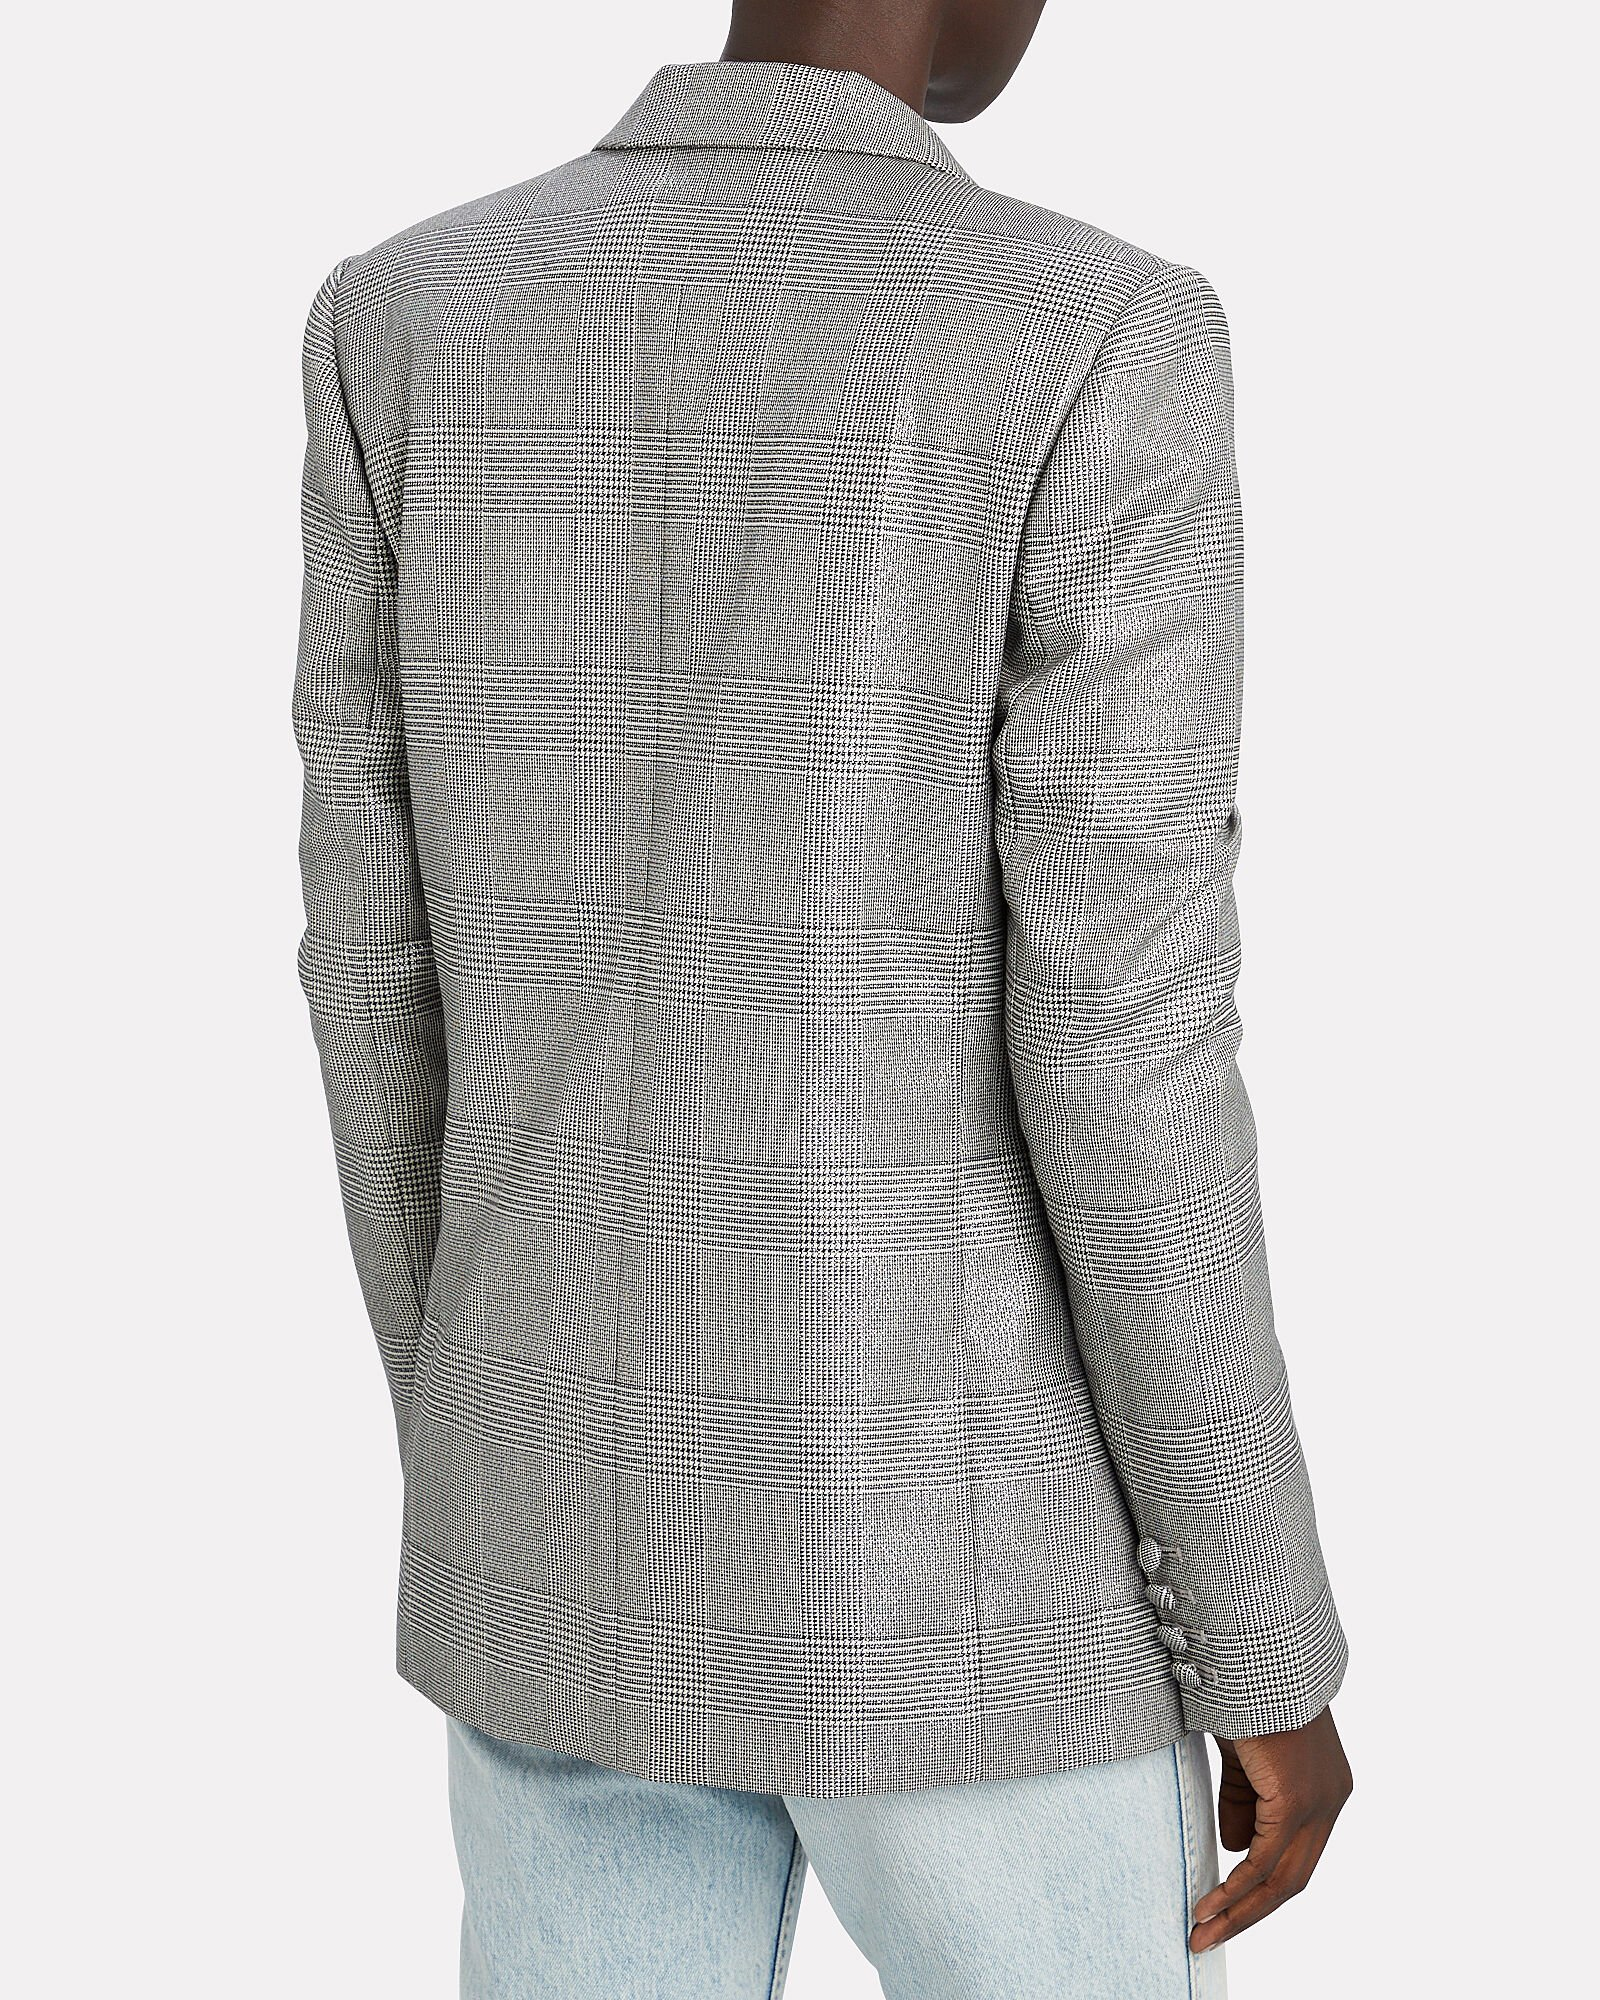 Clark Double-Breasted Blazer, GREY-LT, hi-res